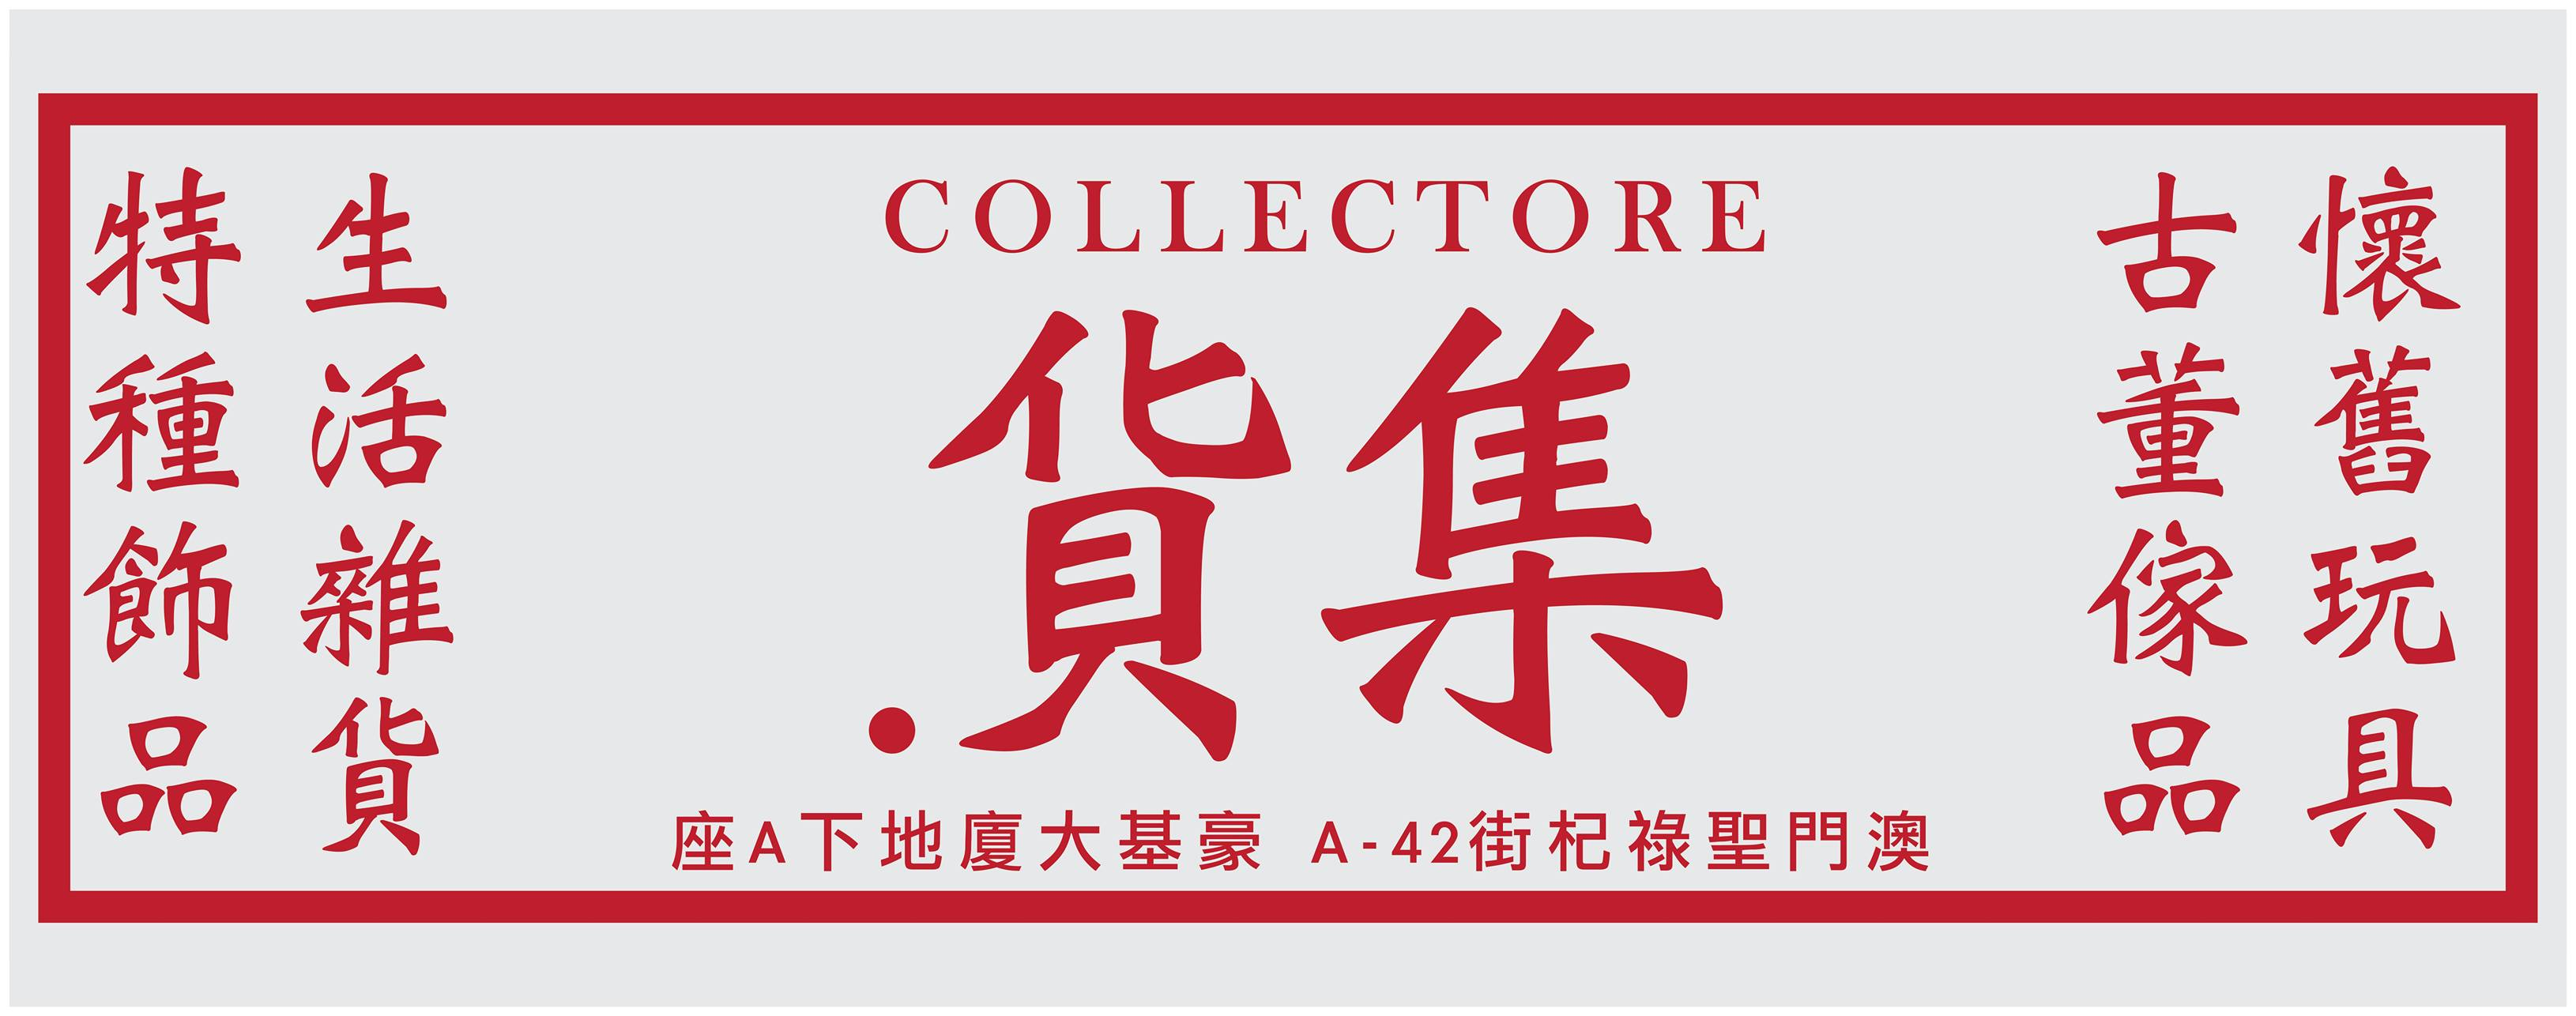 Collectore: Macau's Ultimate Vintage Shop Macau Lifestyle